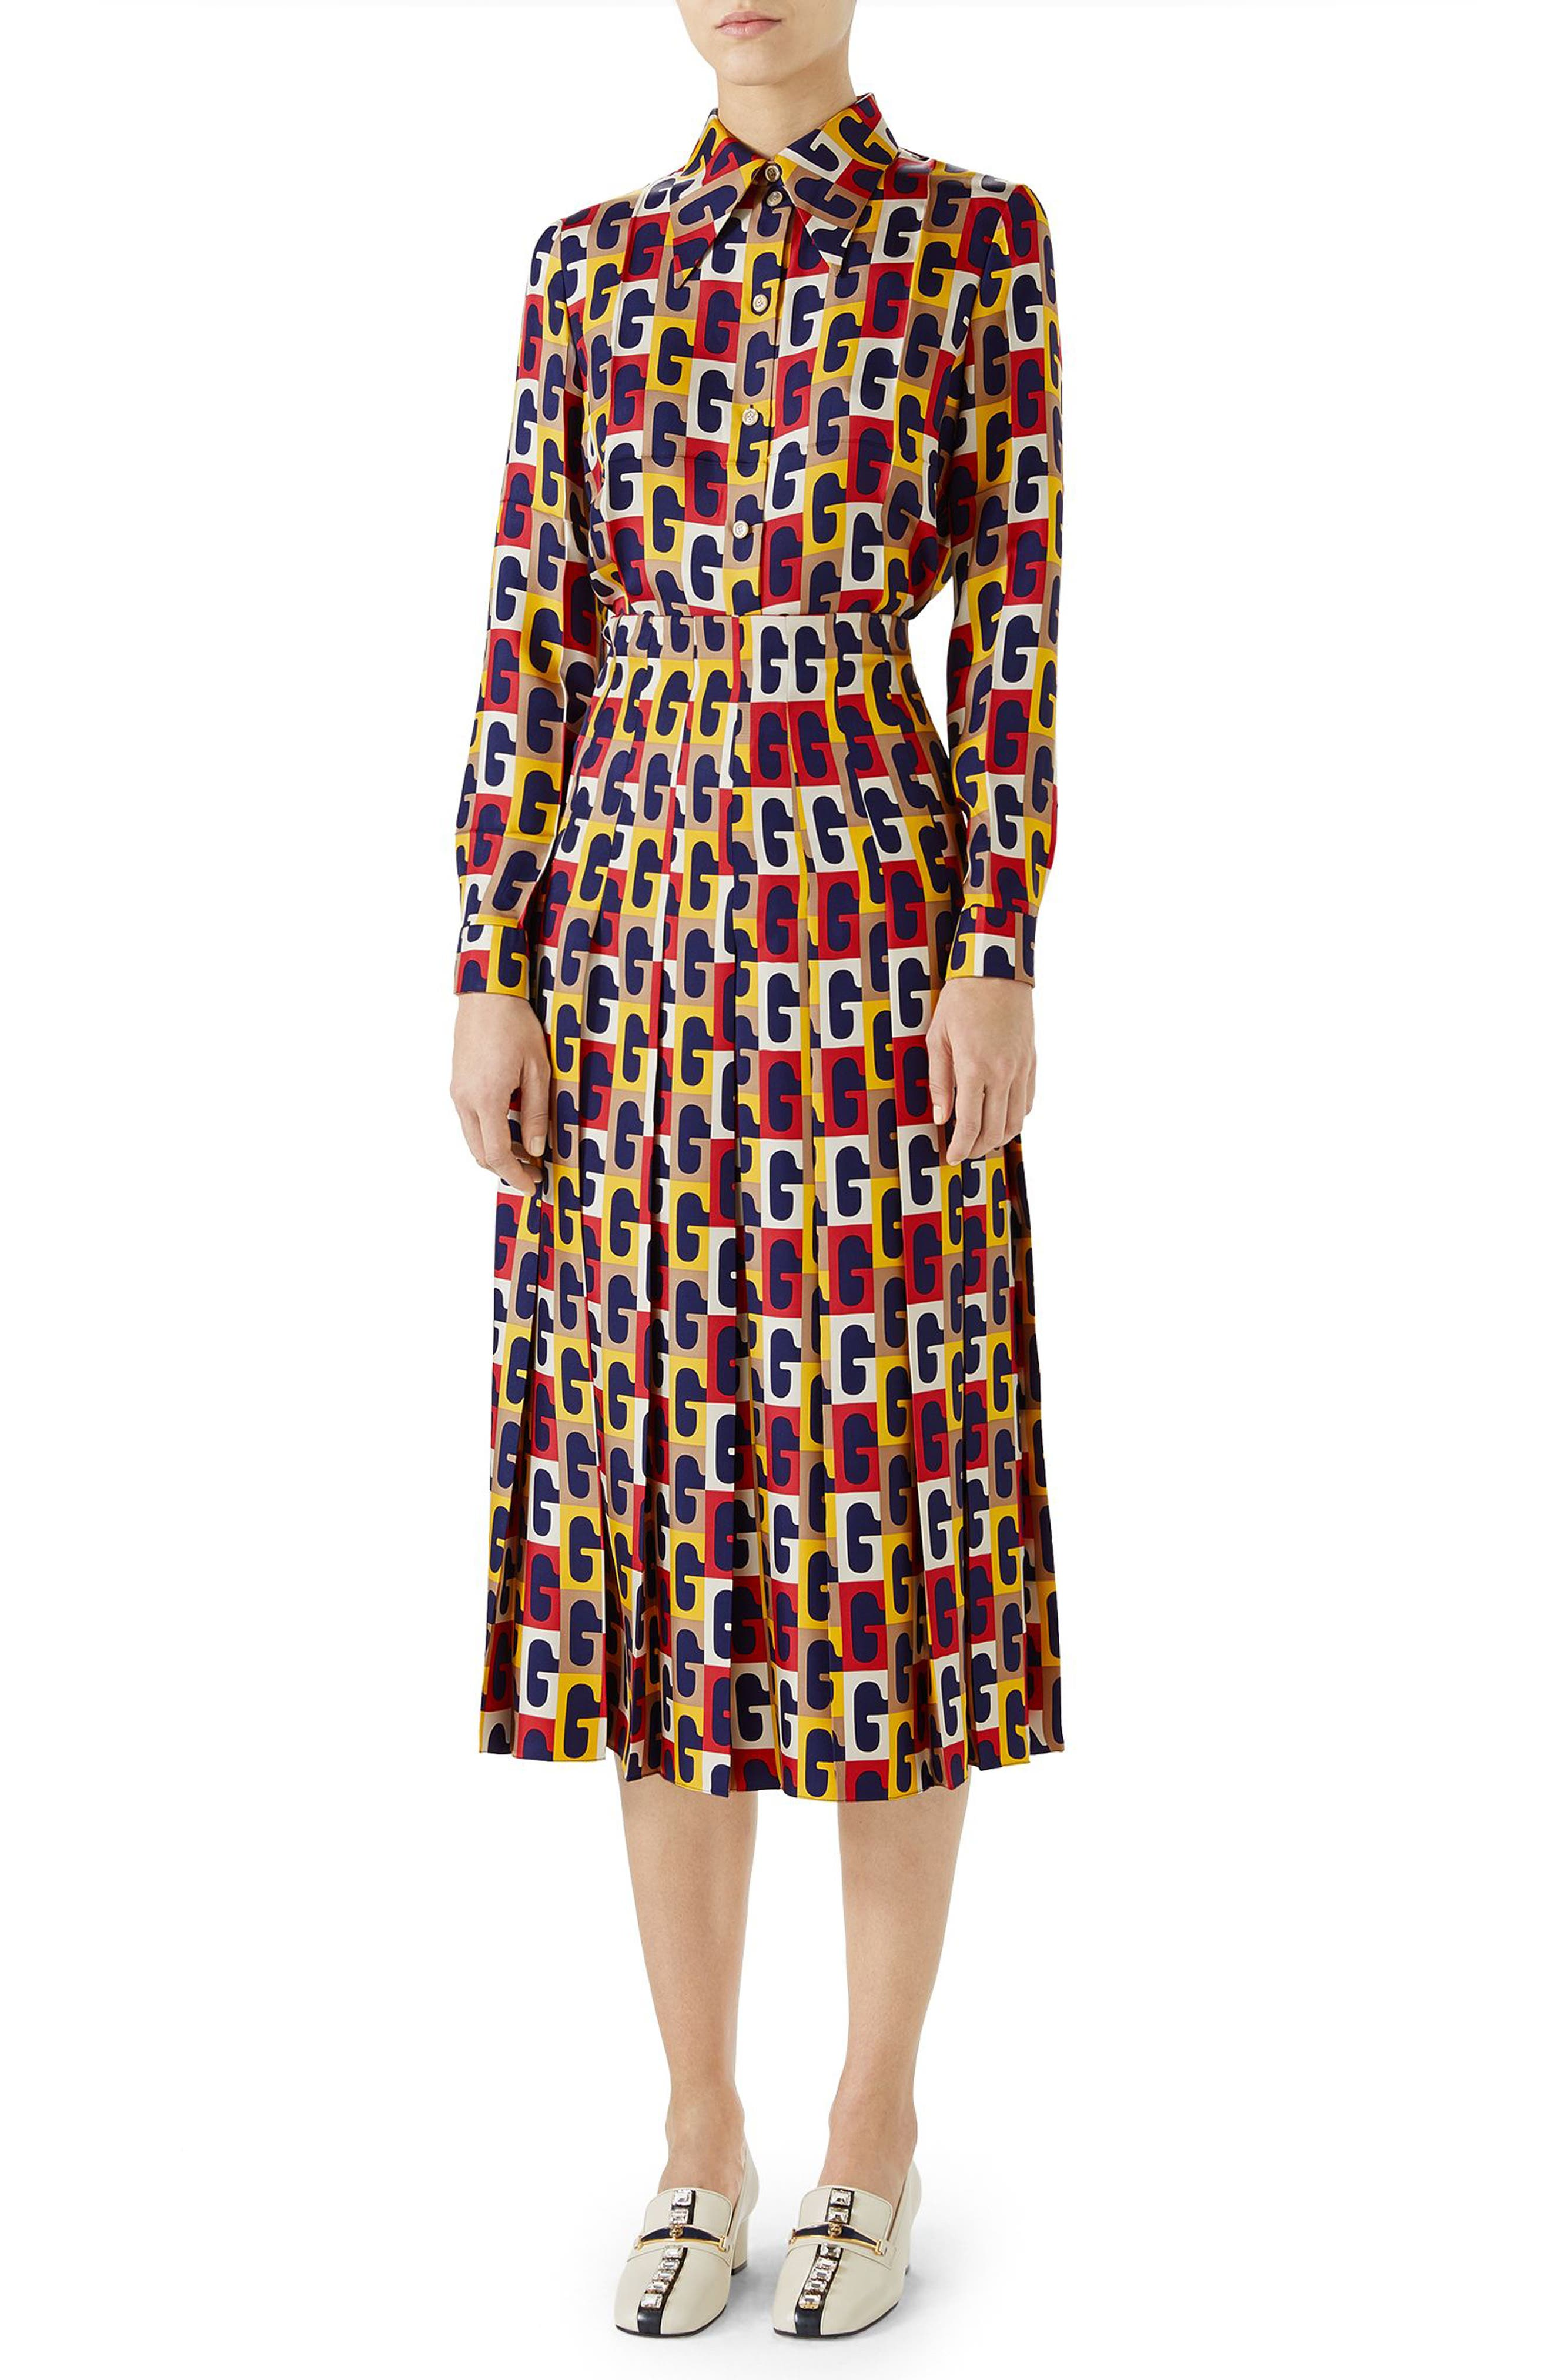 G-Sequence Print Silk Skirt,                             Alternate thumbnail 4, color,                             Ivory/ Yellow/ Red Print